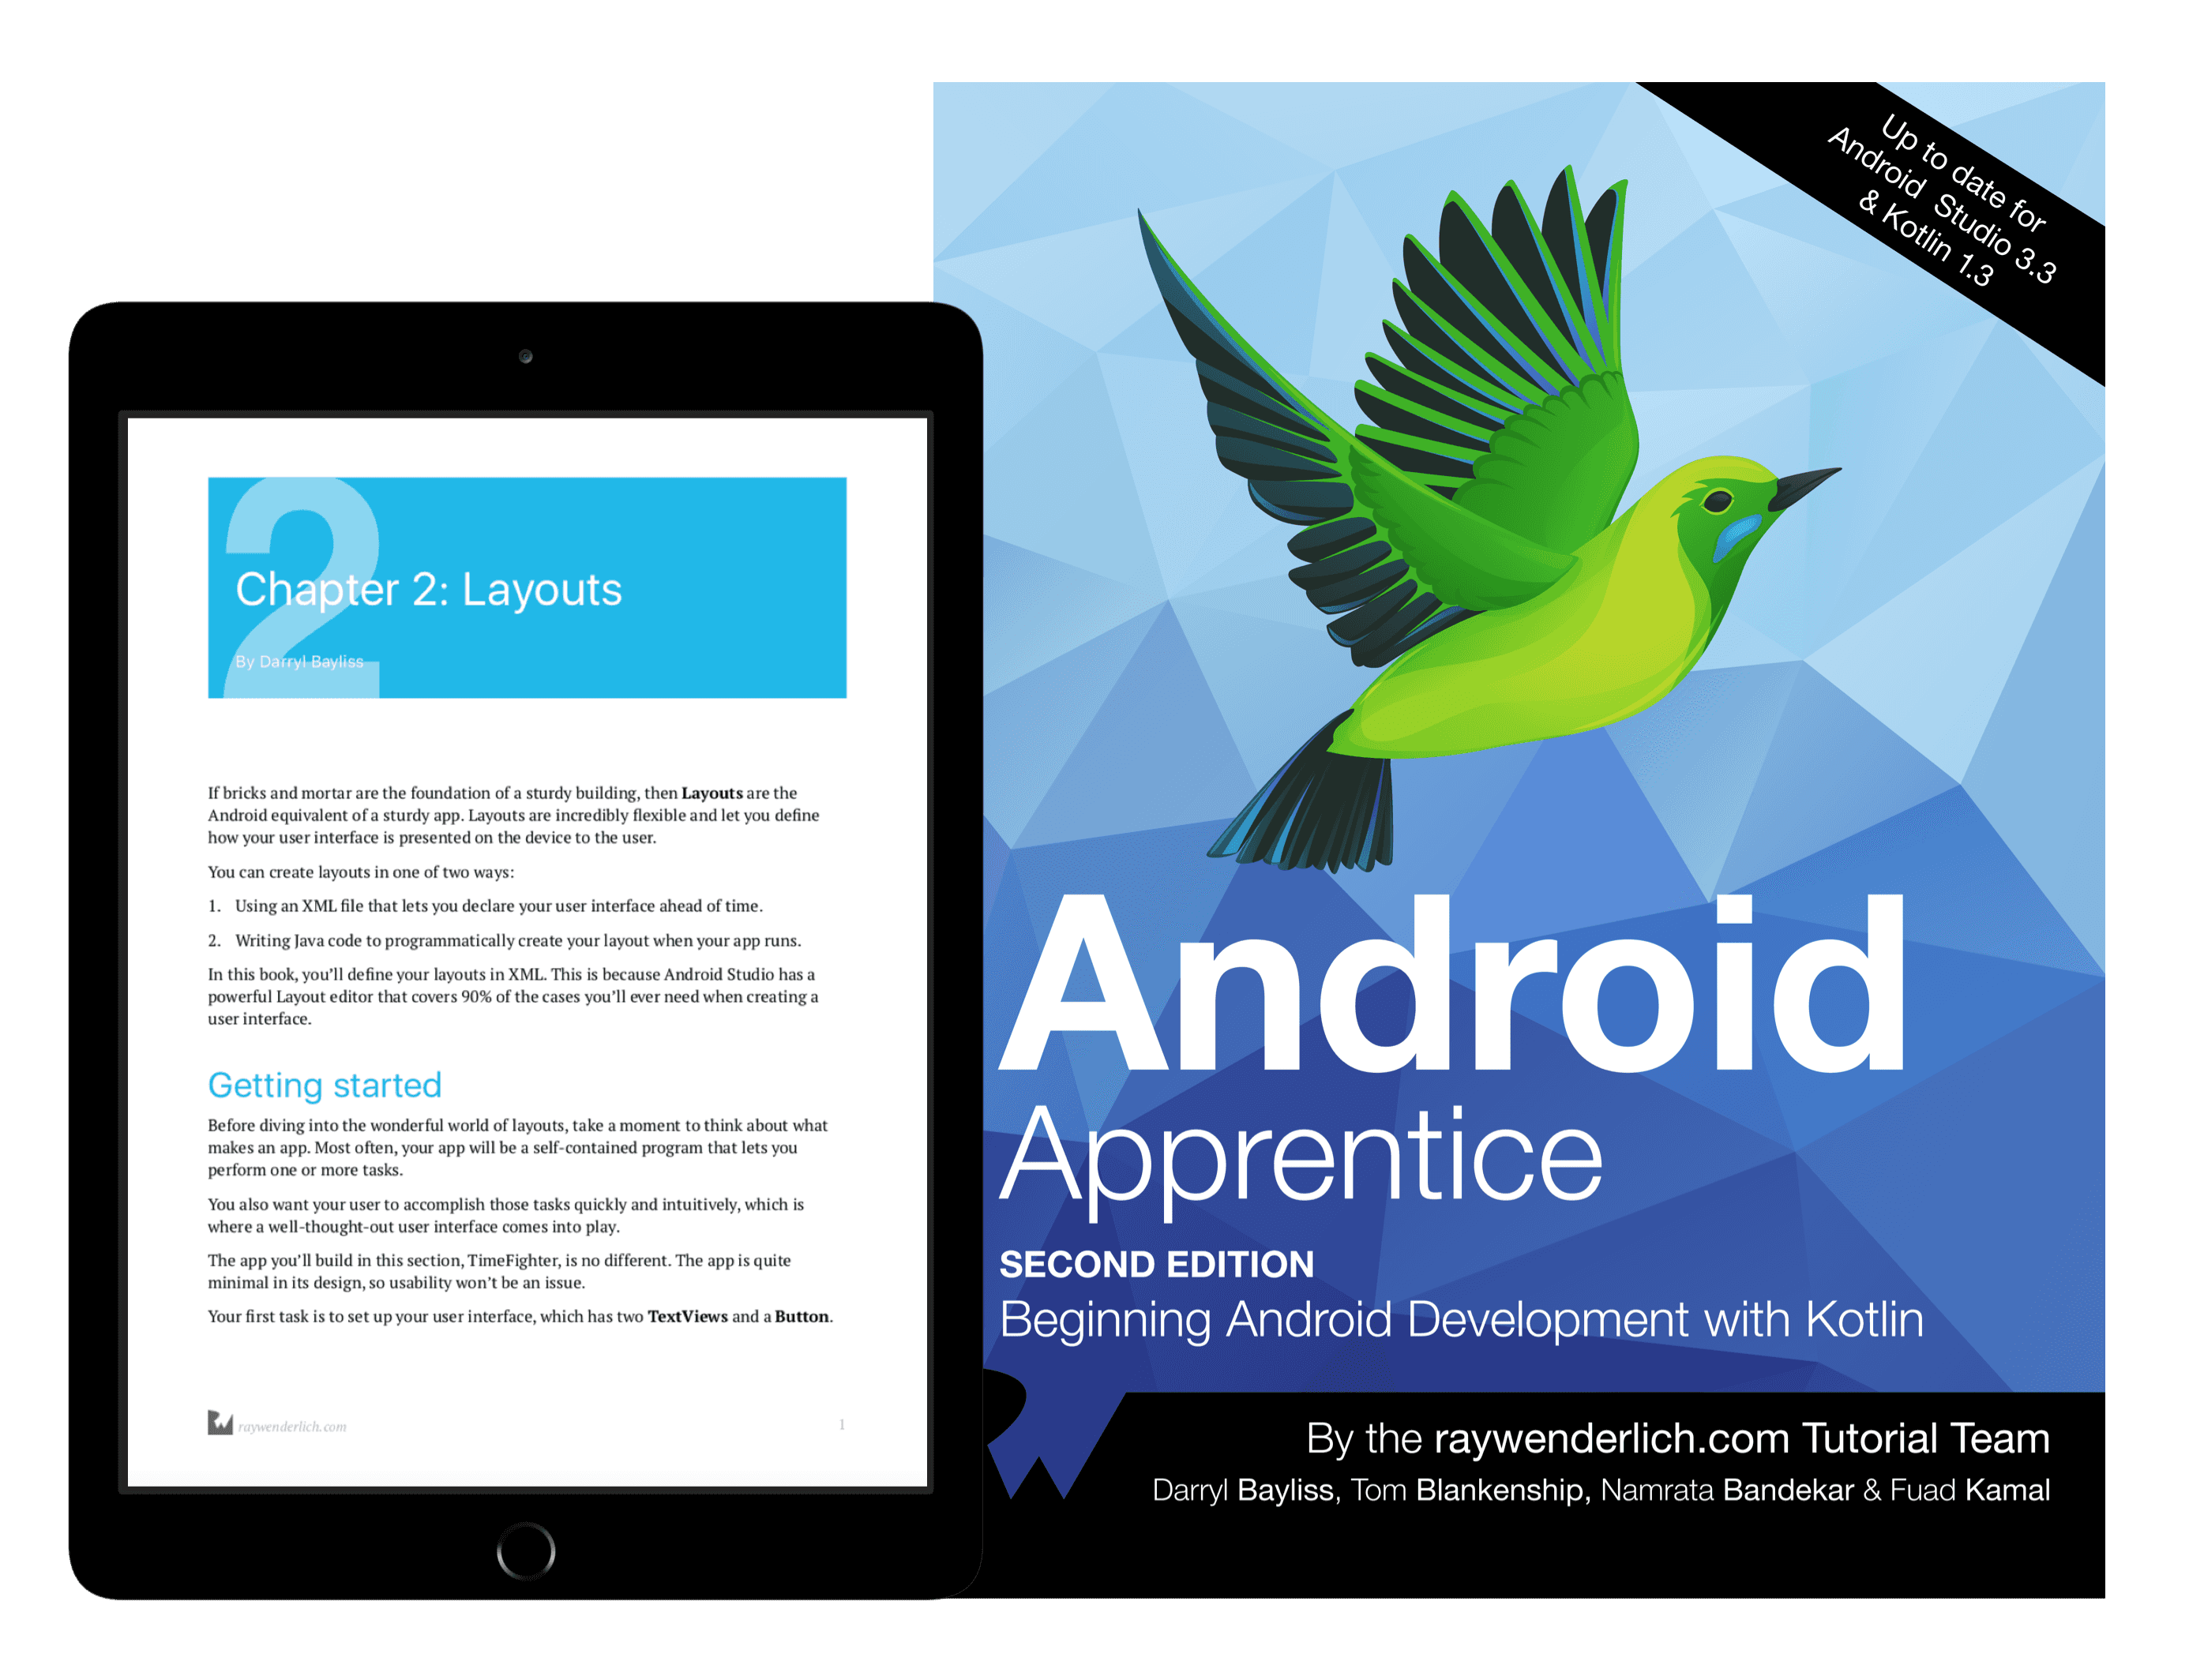 Android Apprentice